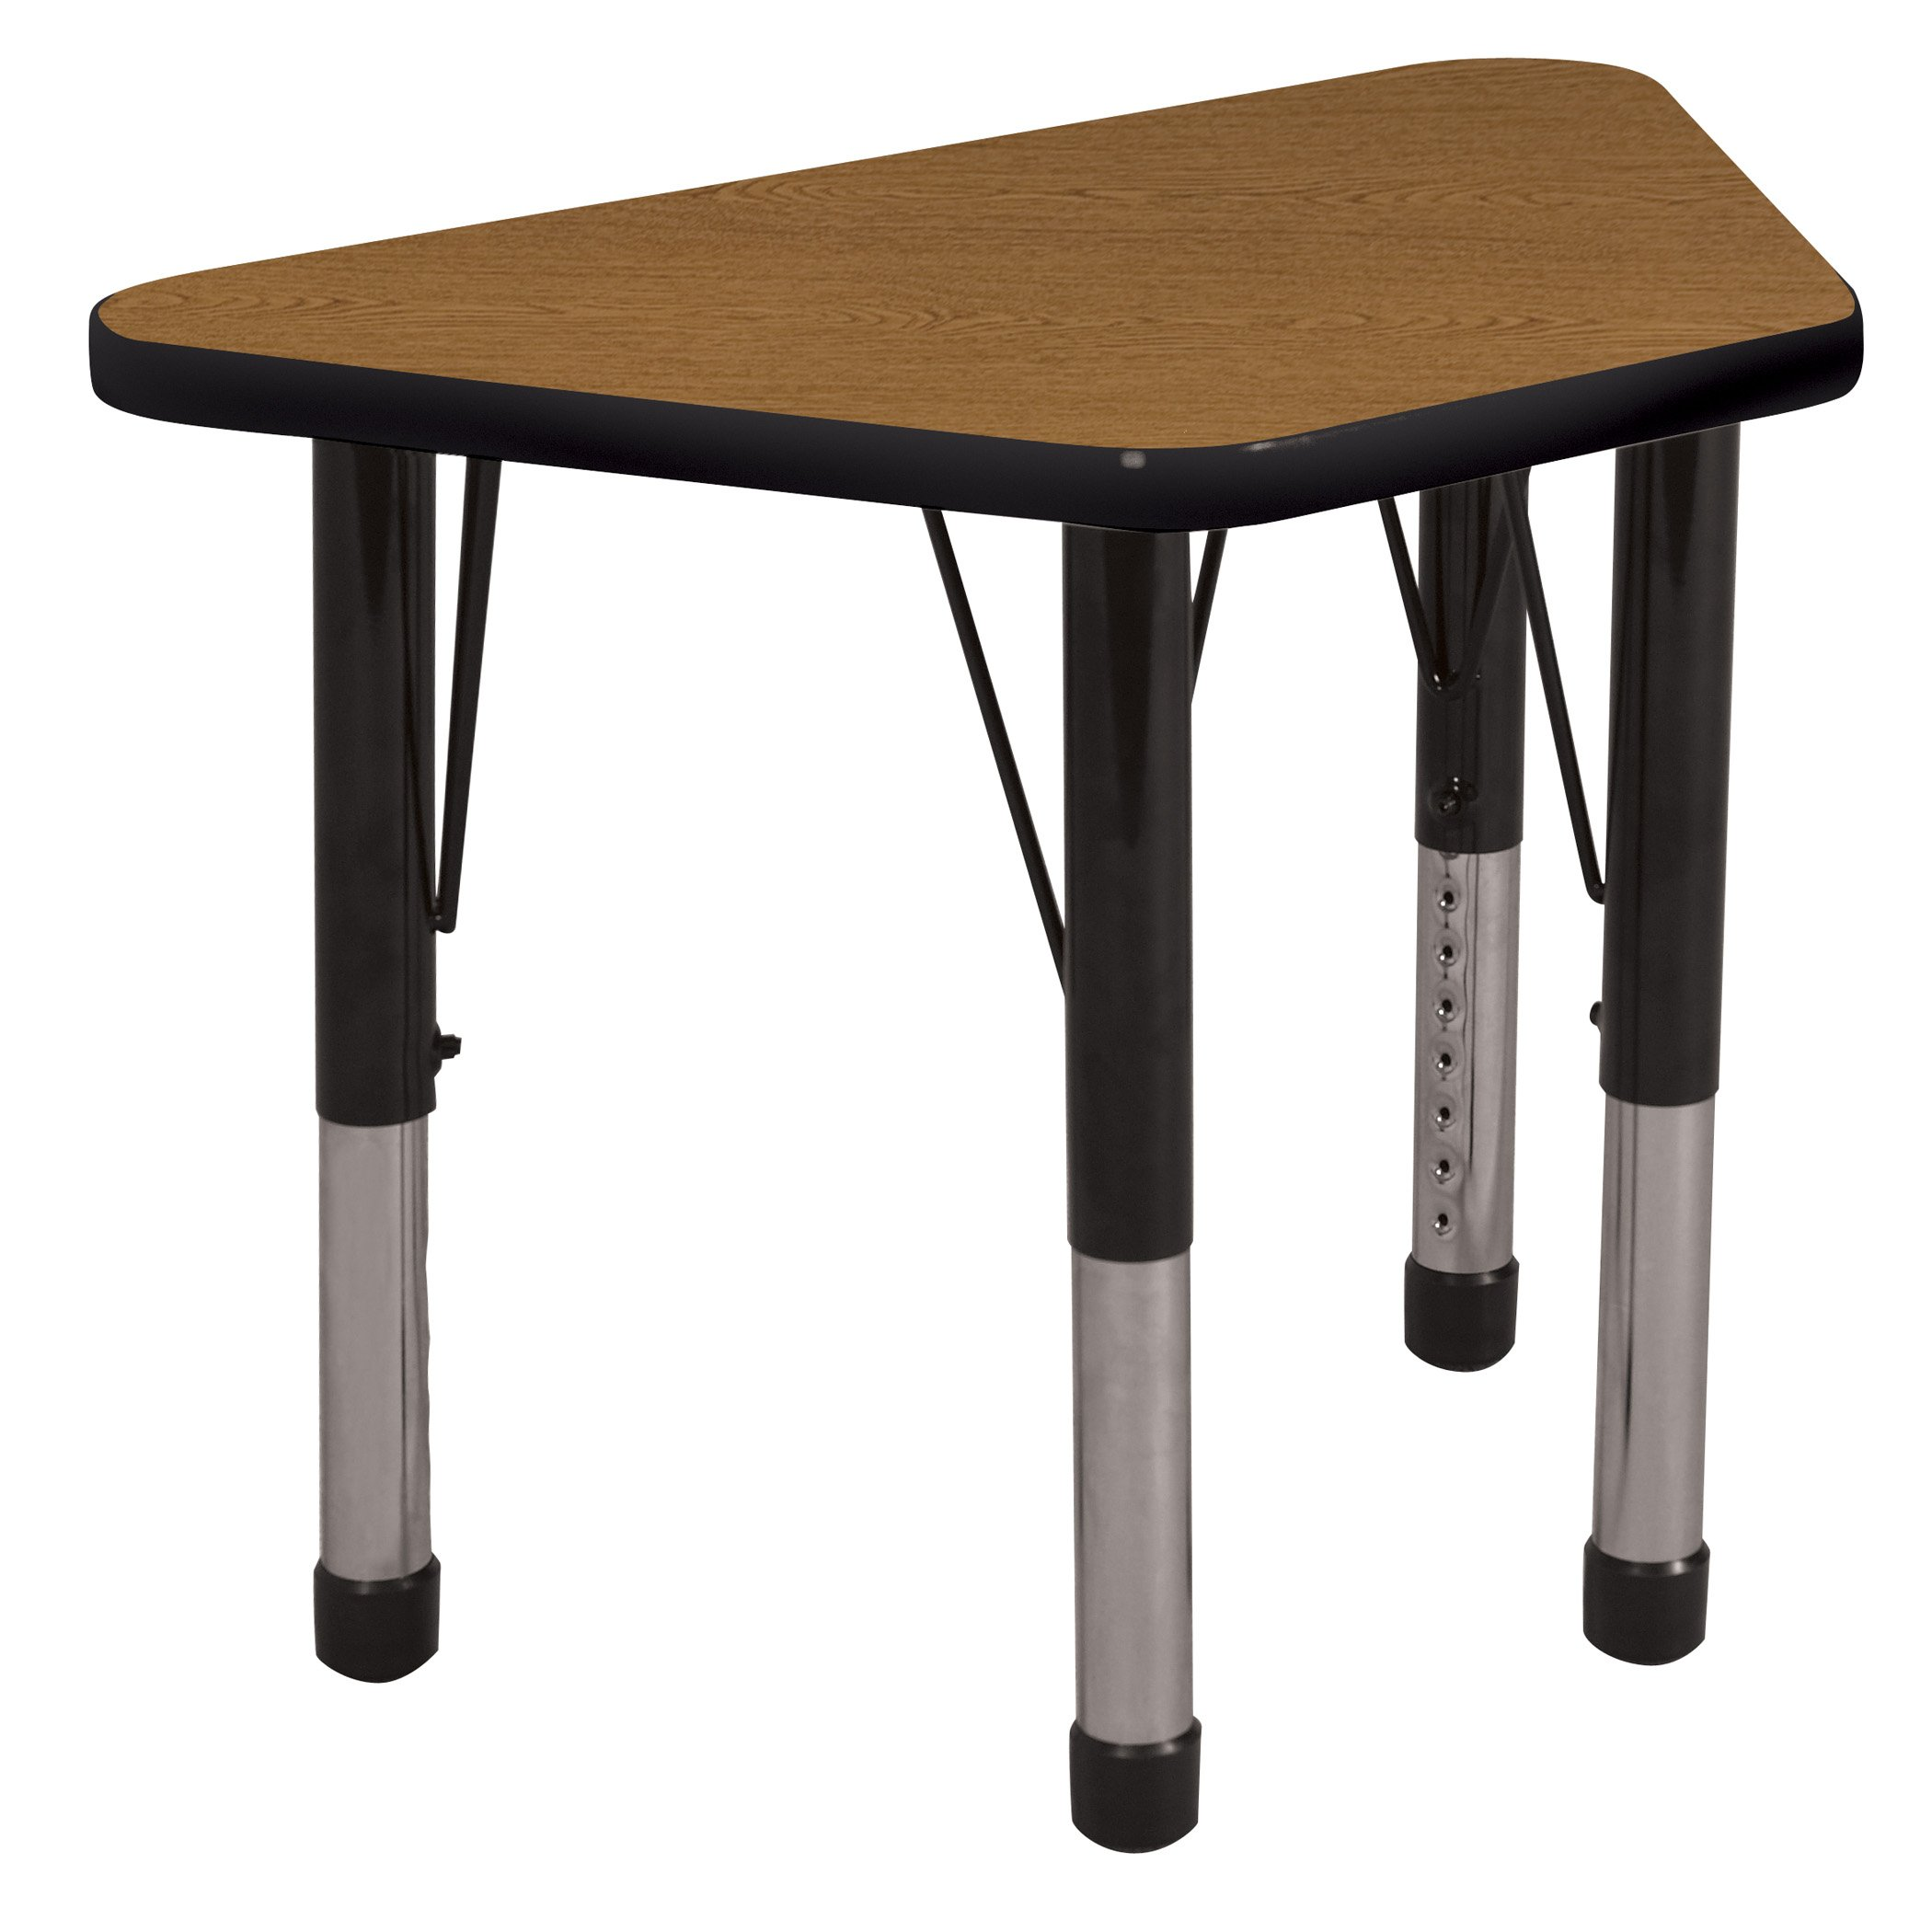 ECR4Kids Everyday T-Mold 18'' x 30'' Trapezoid Activity School Table, Chunky Legs, Adjustable Height 15-24 inch (Oak/Black)